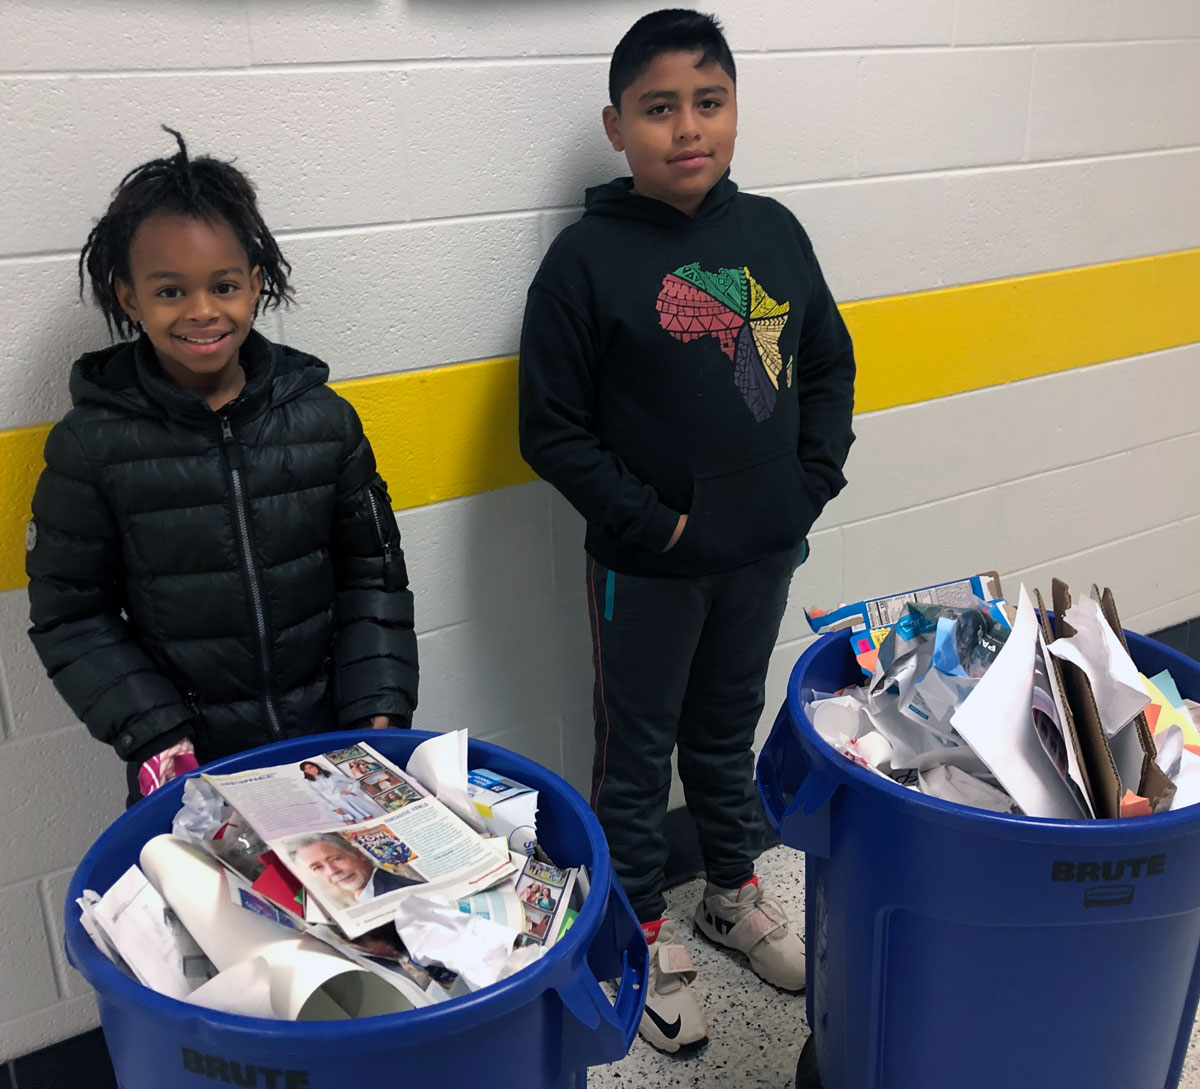 Students Rajanae Bethea and Angel Zamora-Perez show off how much recycling they have collected.